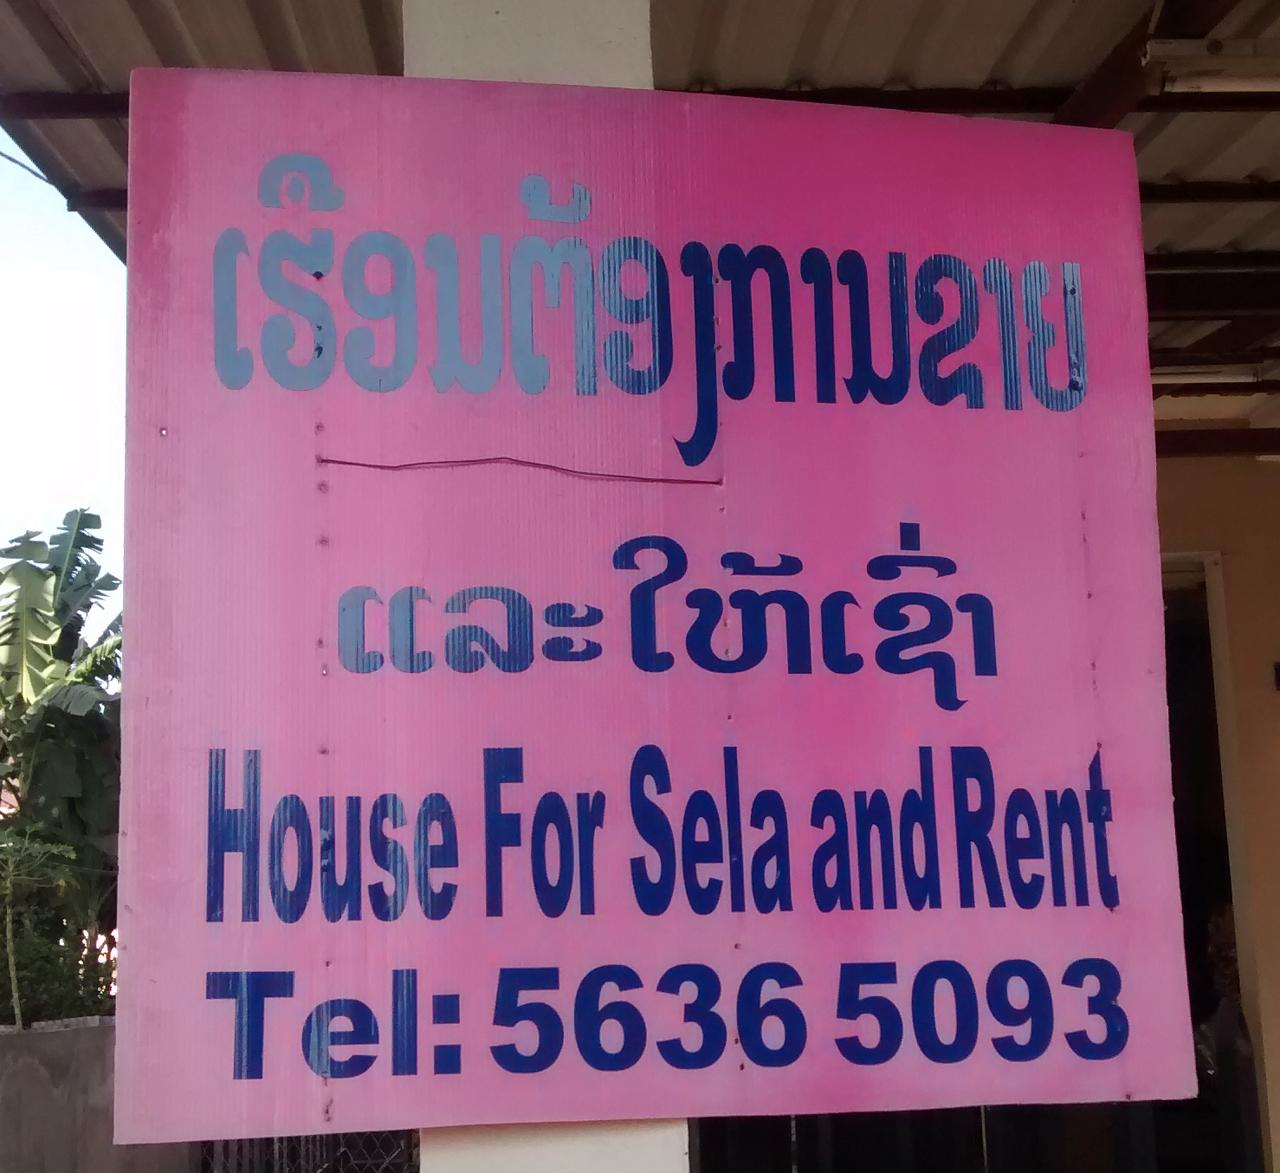 House For Sela and Rent